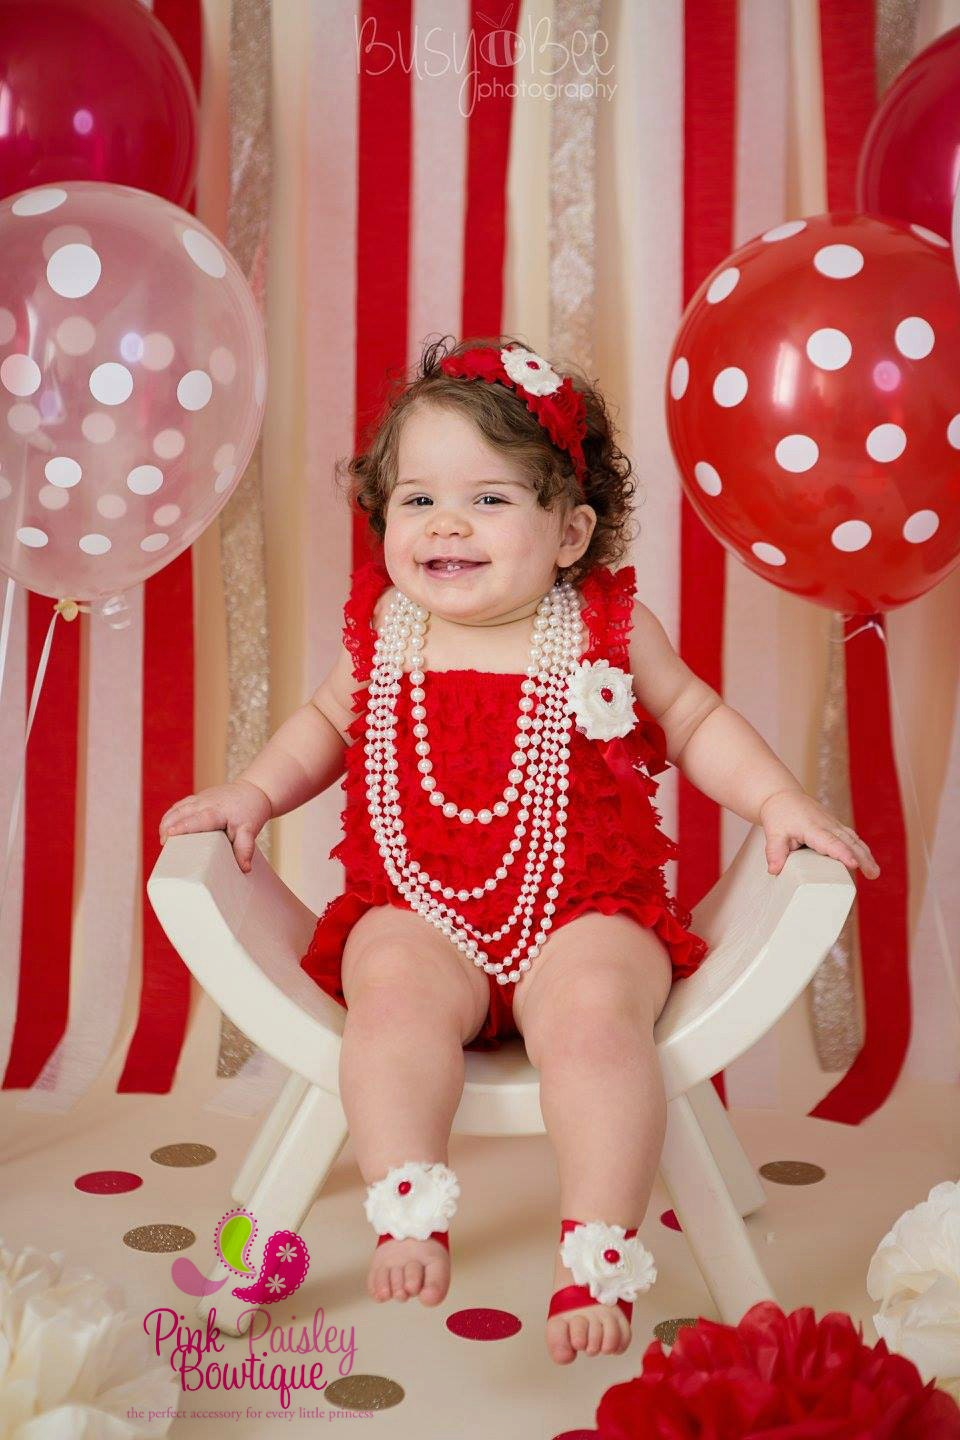 Fill your wardrobe with options from the Gap baby girls' first birthday outfits collection. Browse the baby girl first birthday outfit assortment in colors and prints that range from neutral to bold.